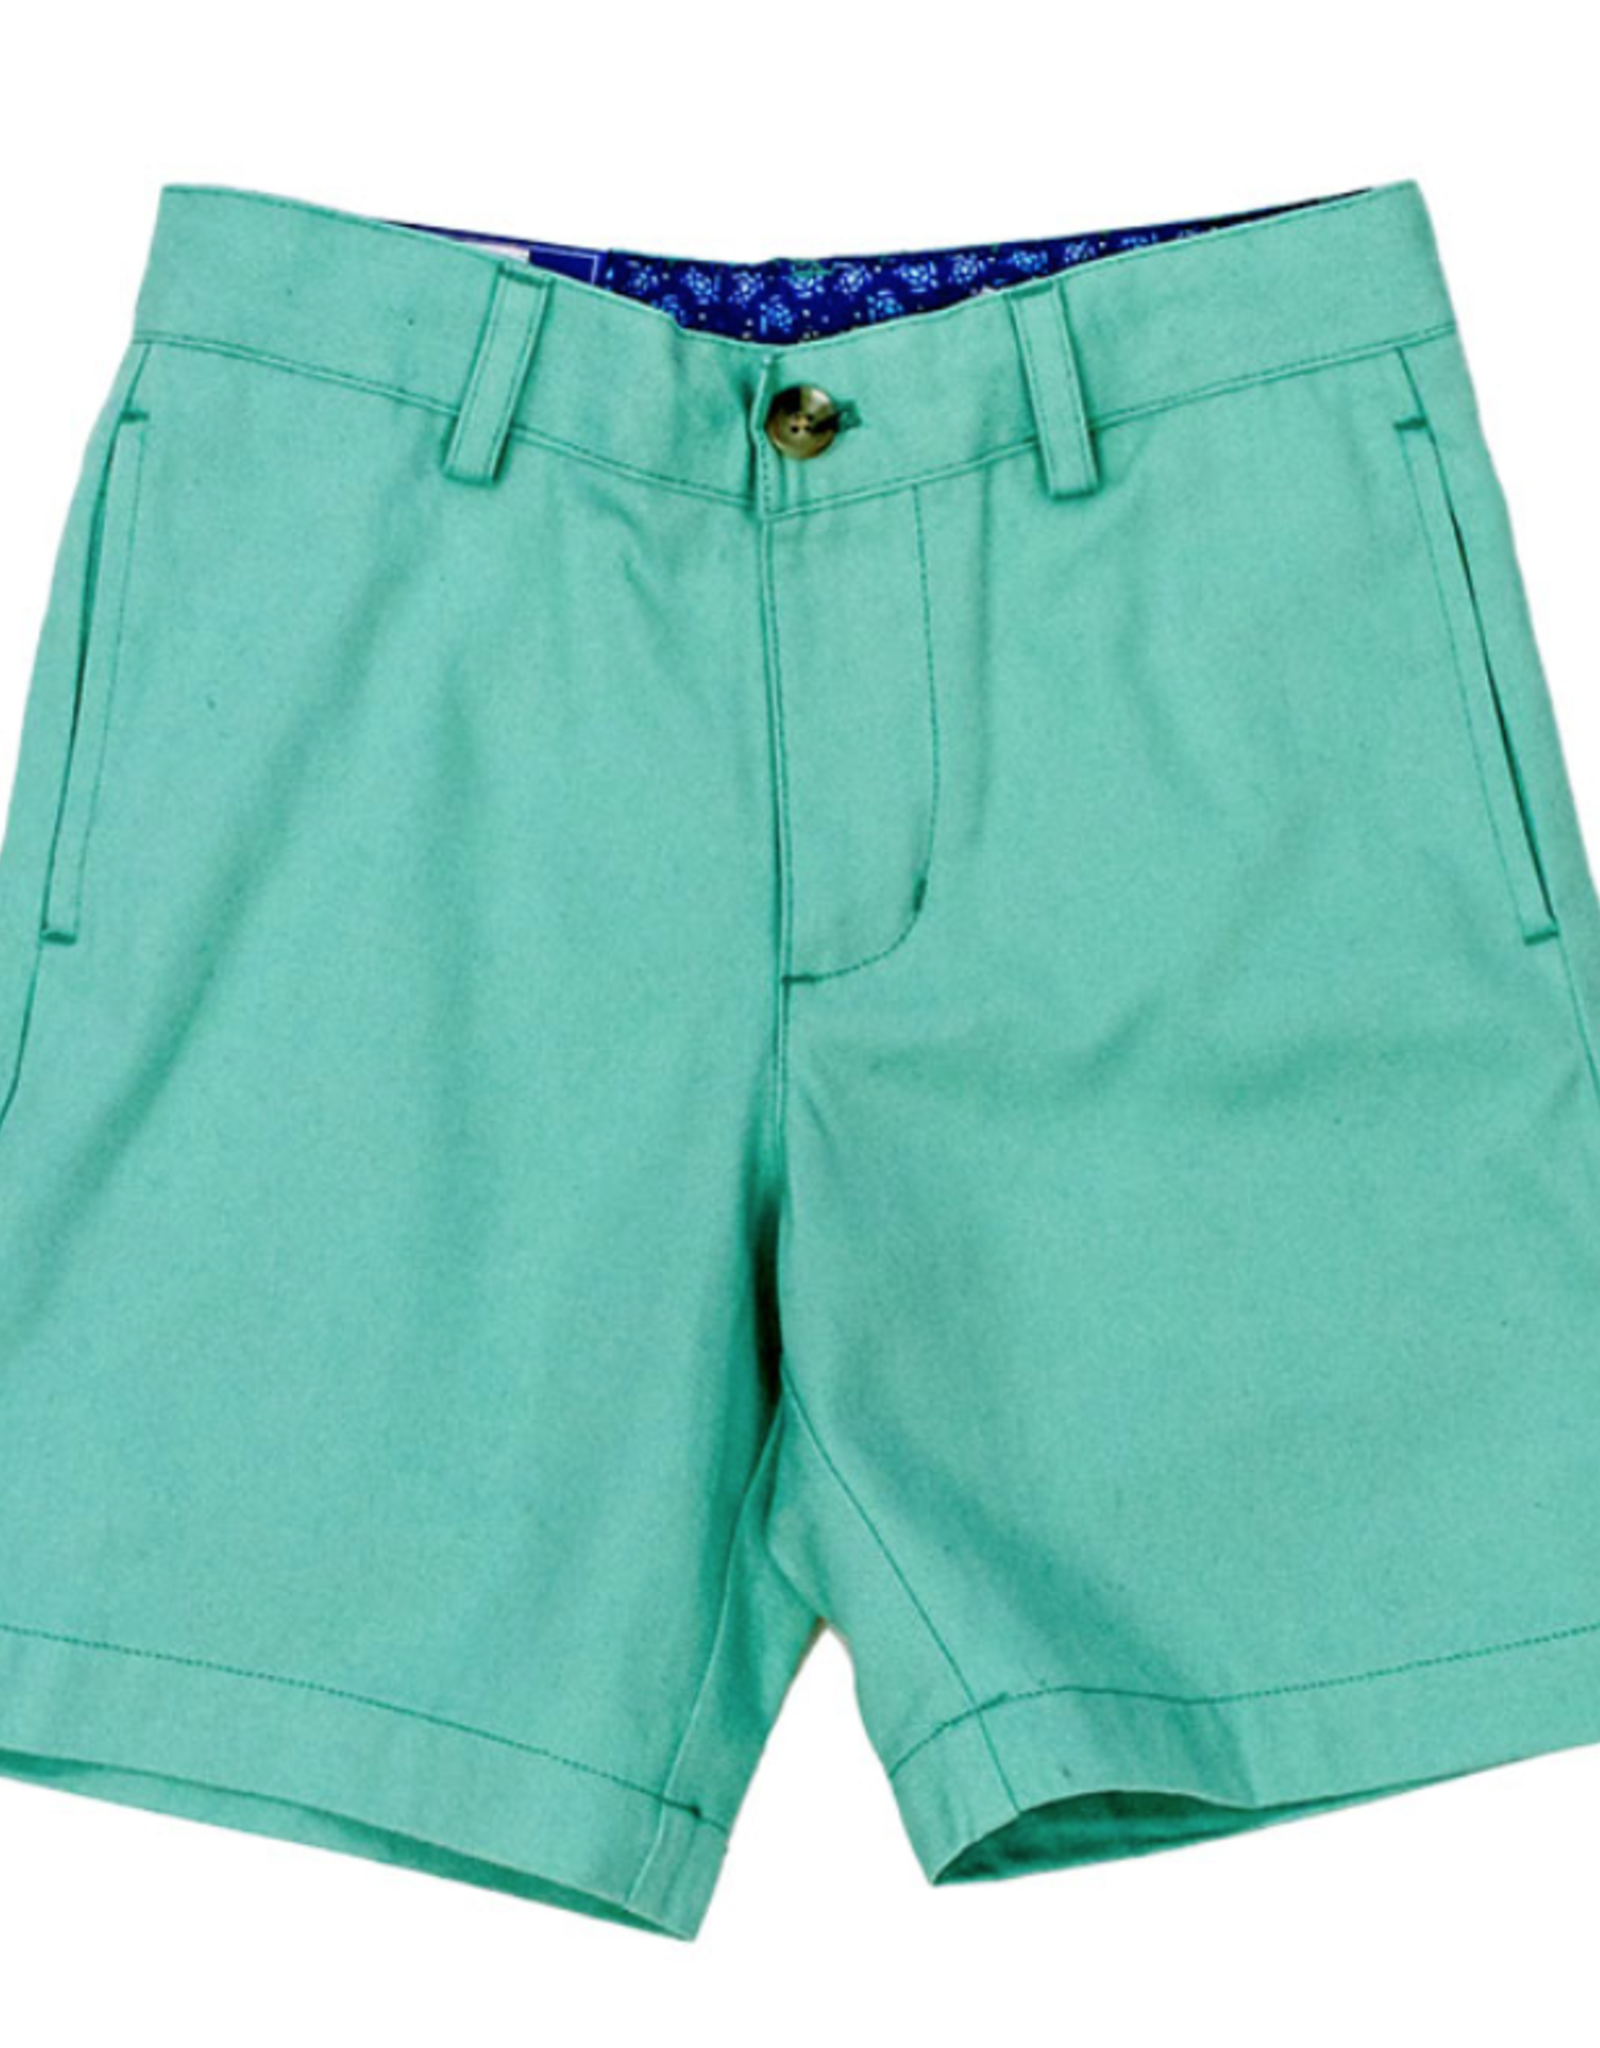 The Bailey Boys Aloe Twill Shorts